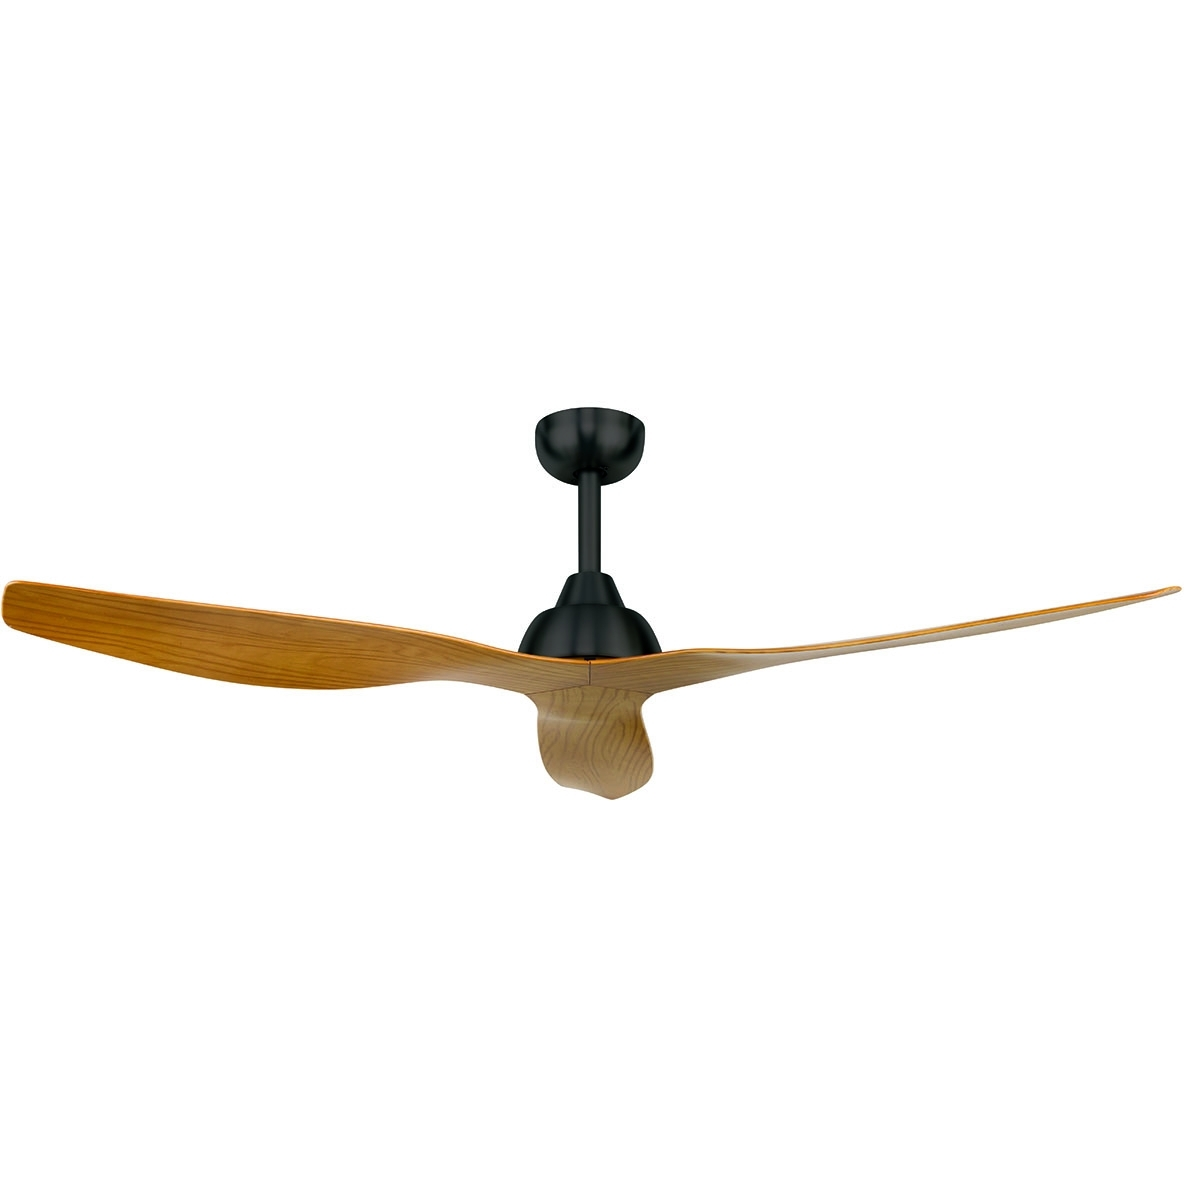 "Current Vector 52"" Ceiling Fan With Ezy Fit Blades – Brilliant Lighting In Outdoor Ceiling Fans For High Wind Areas (View 3 of 20)"